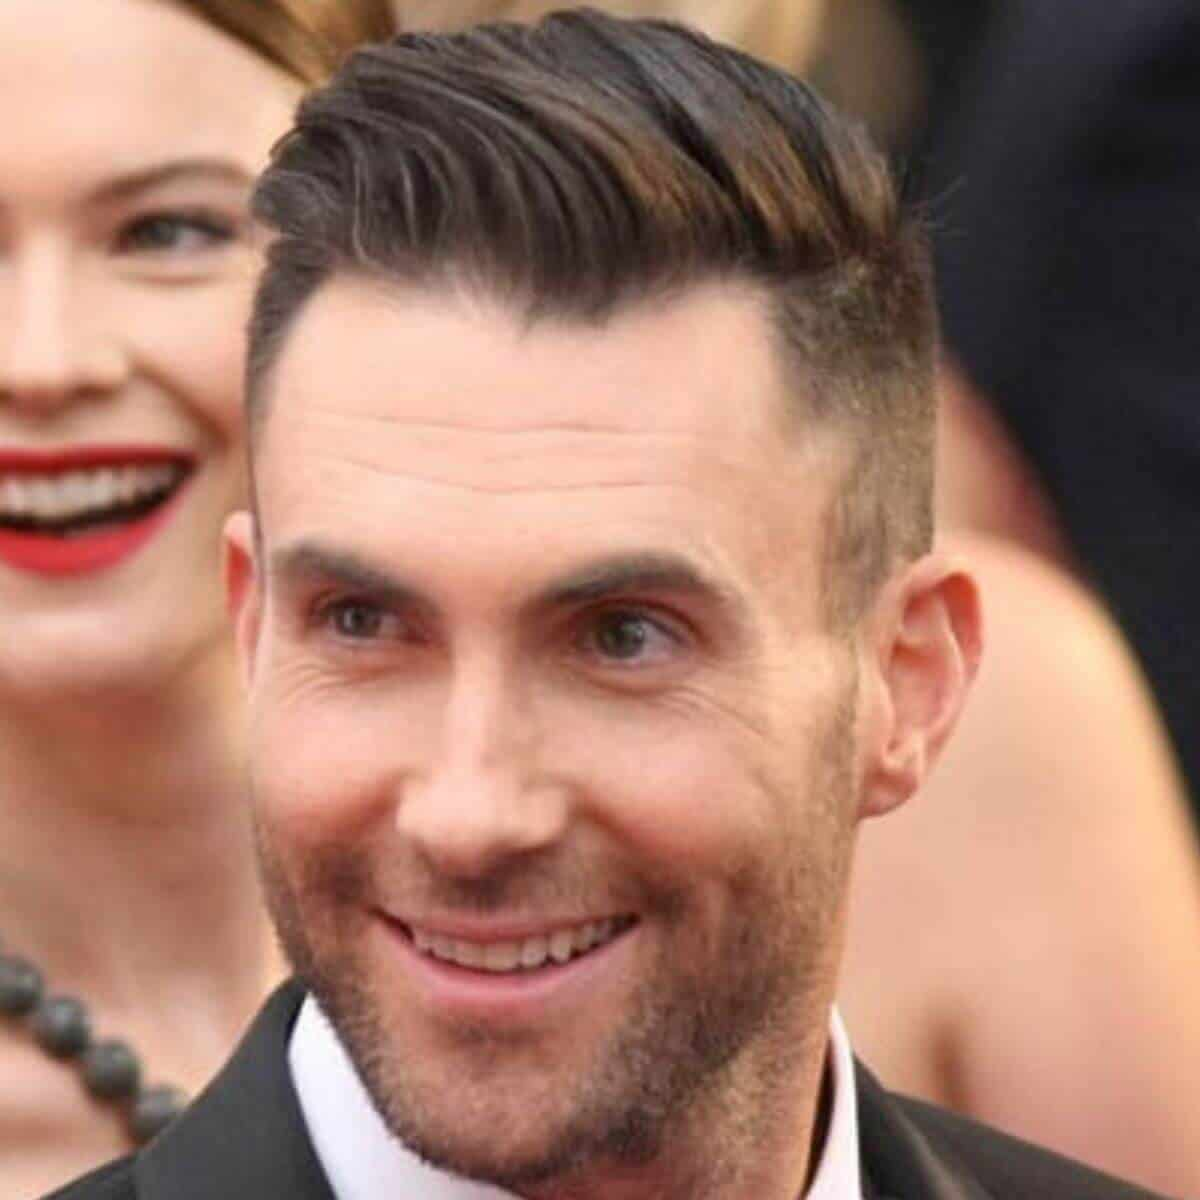 Headshot of Adam Levine wearing a suit.